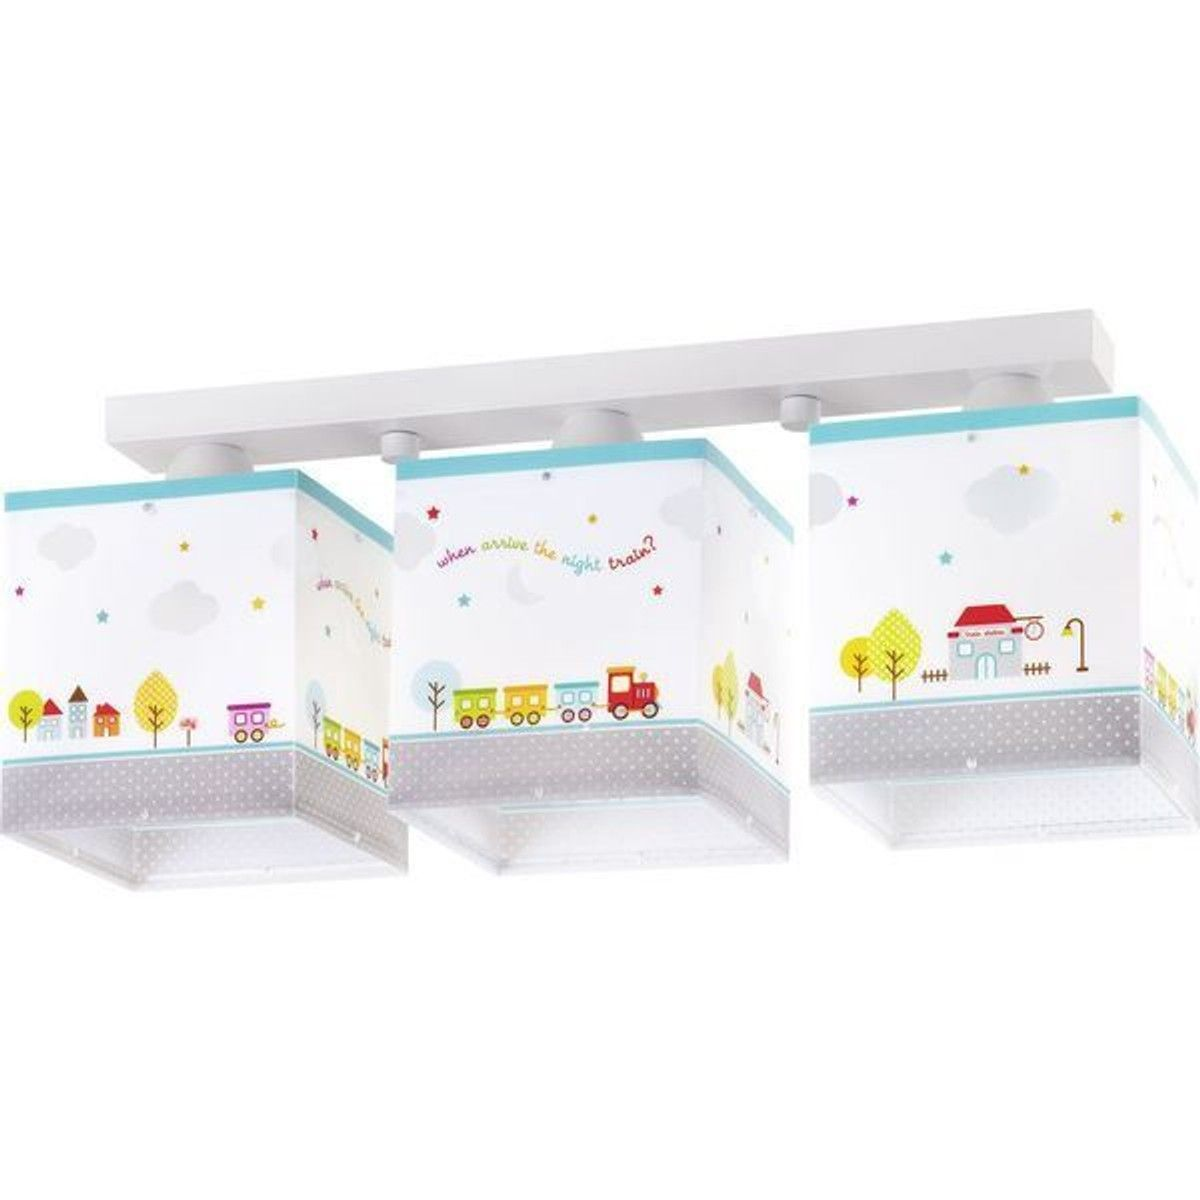 Night 65533 3 Lampes The Taille Train Dalber Enfant Plafonnier XiOPZlwkTu